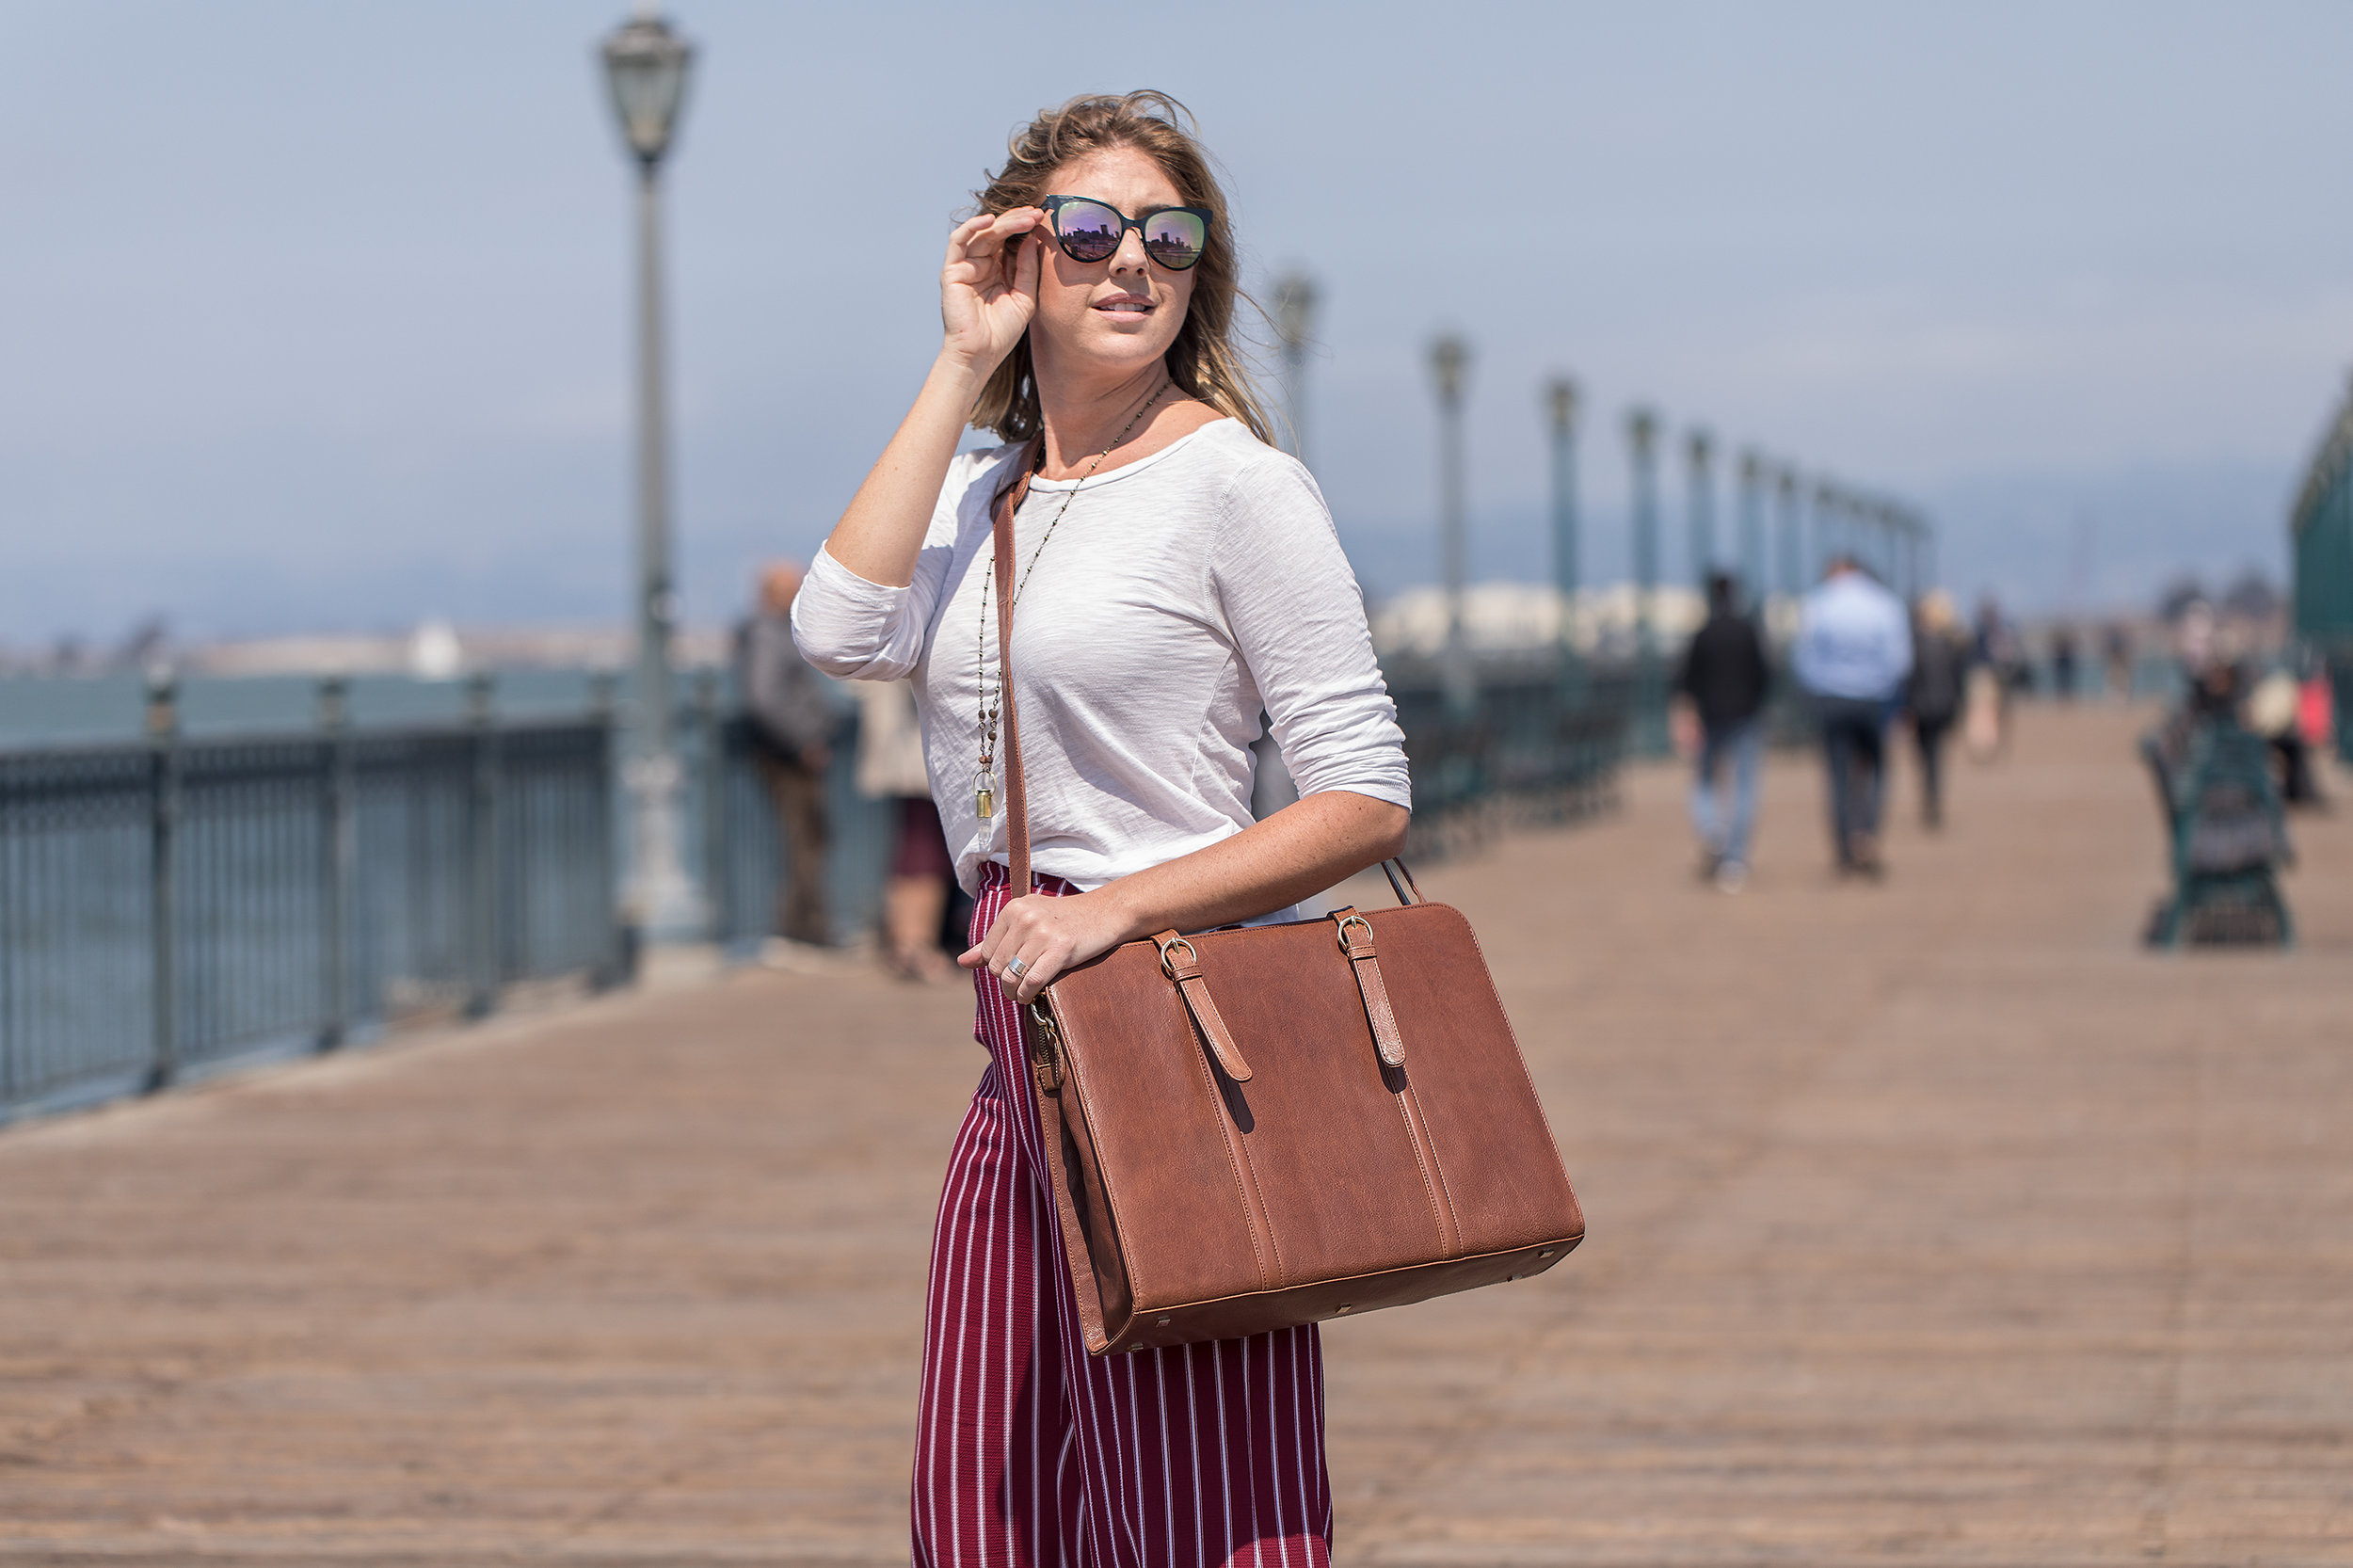 commercial fashion photography for Era81 laptop bag in san francisco businesswoman on the go